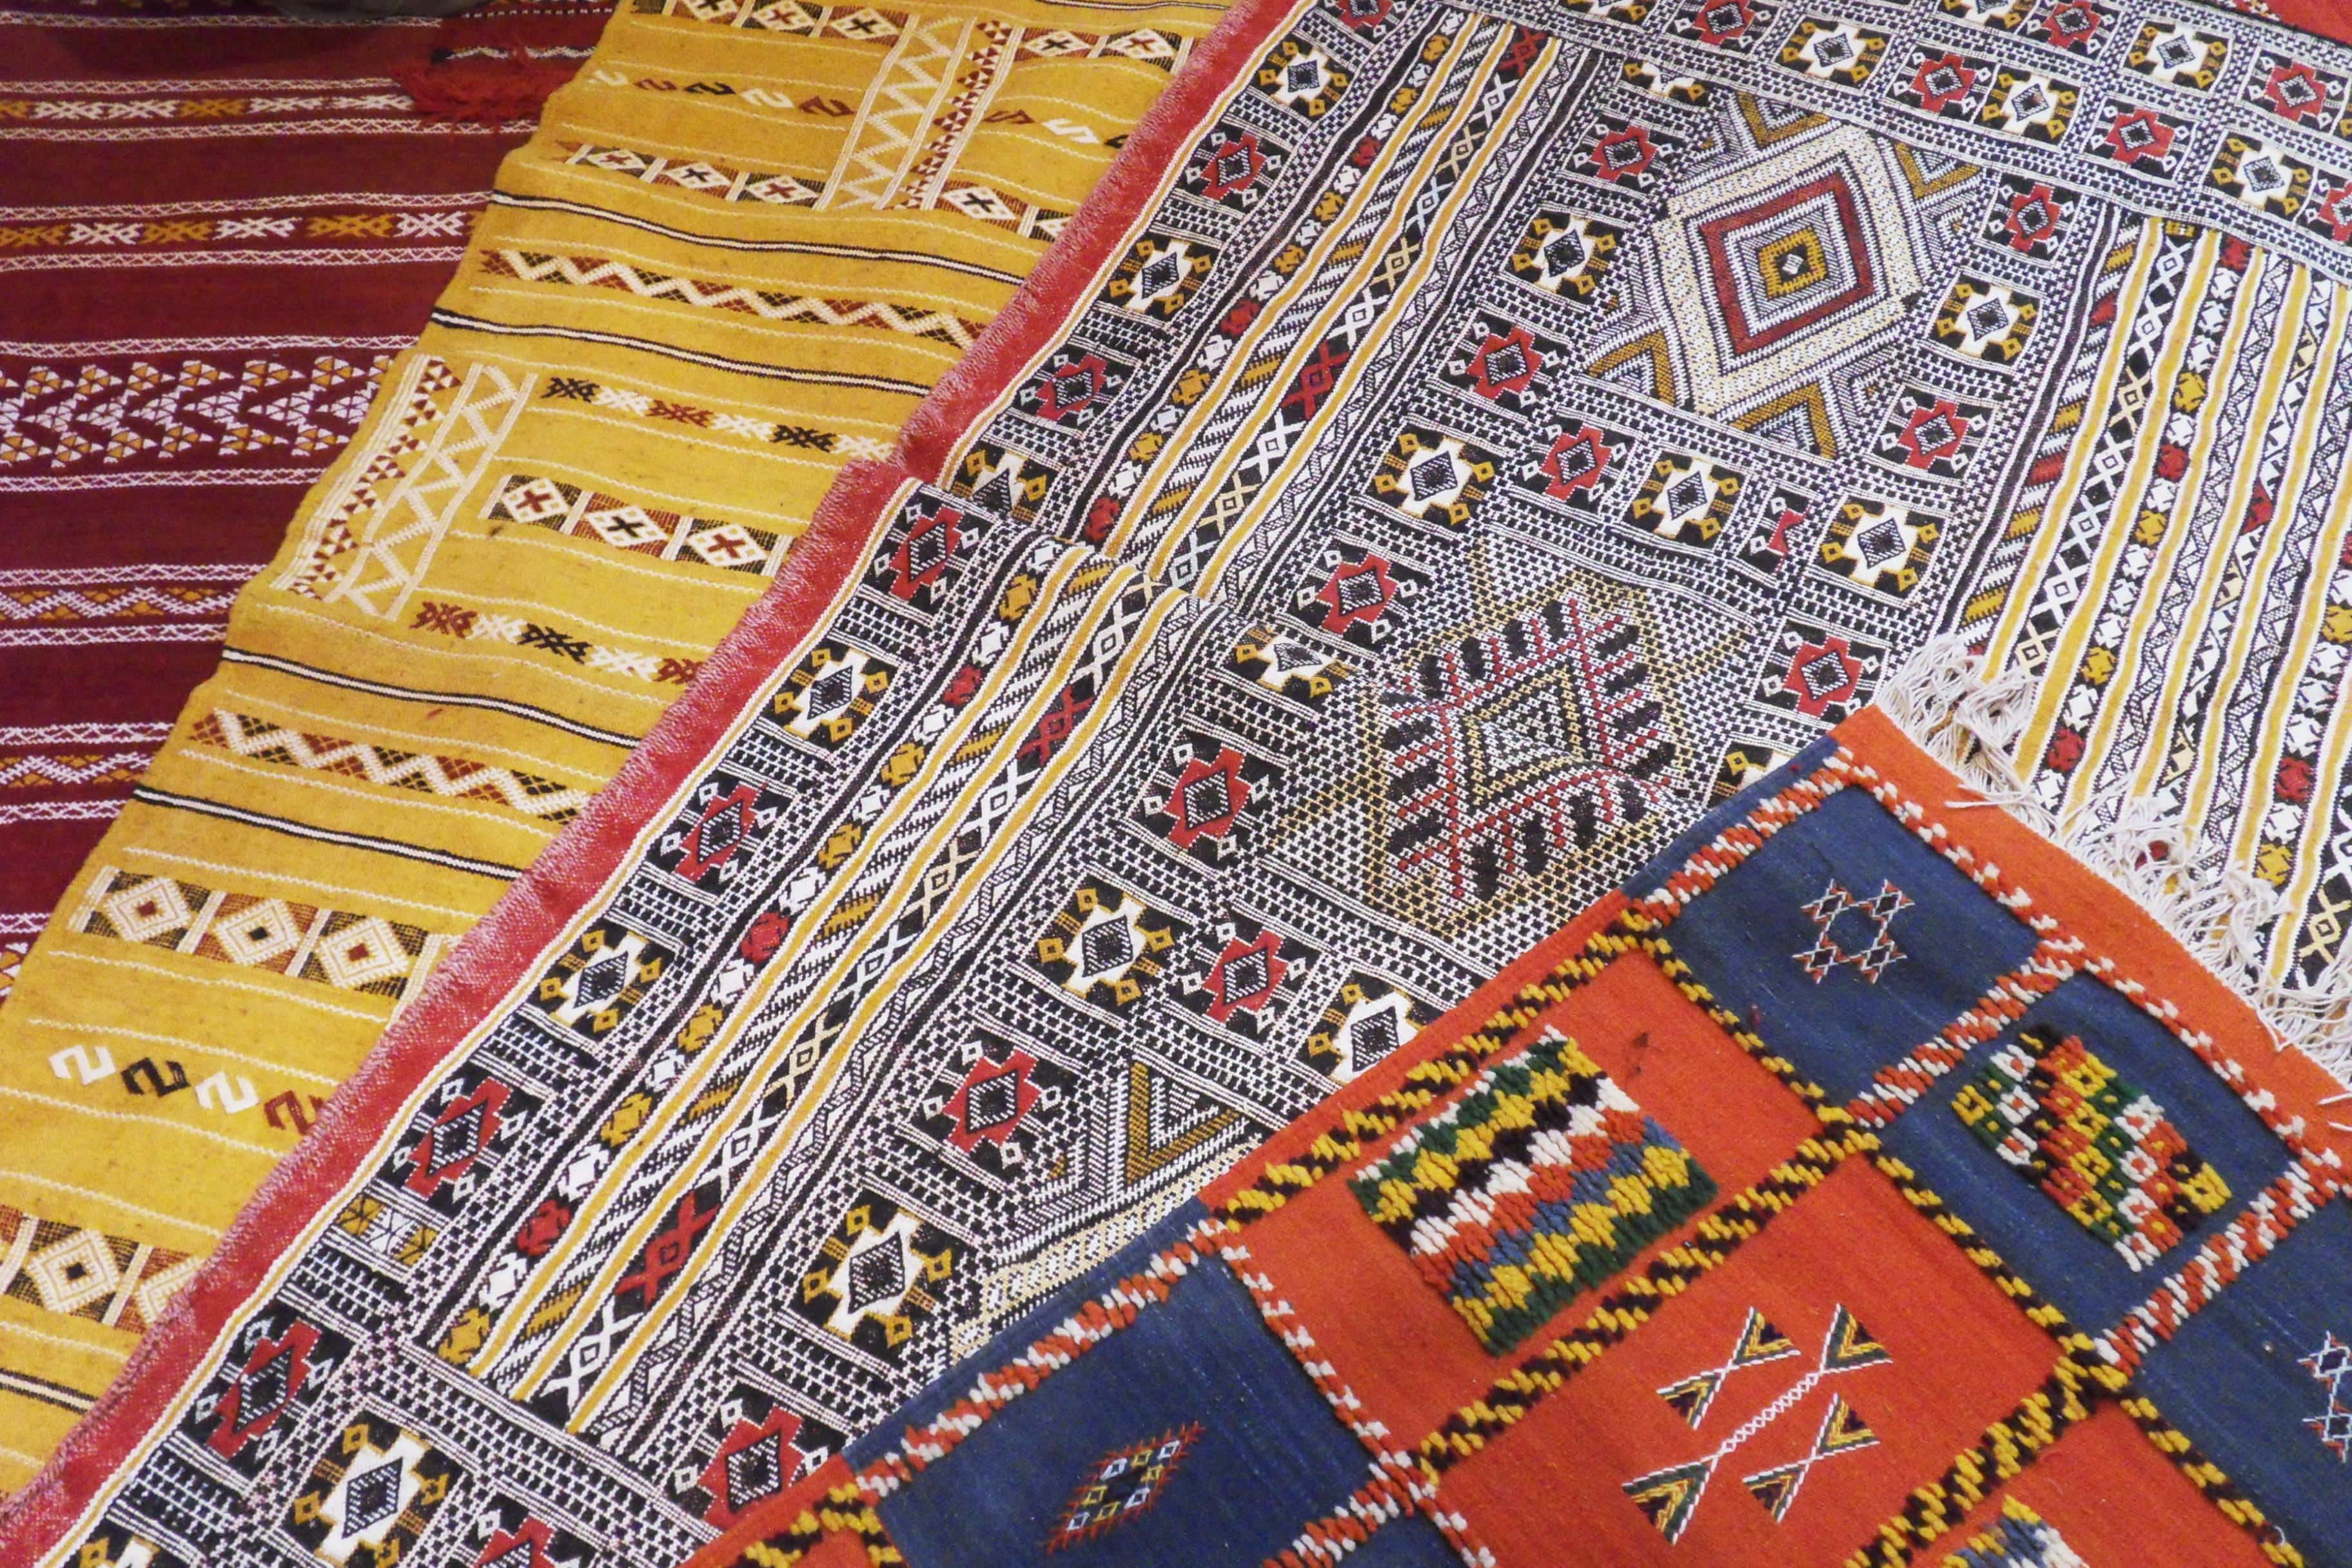 Berber Tribe Of Morocco - Rugs Of Morocco Shopping Souk